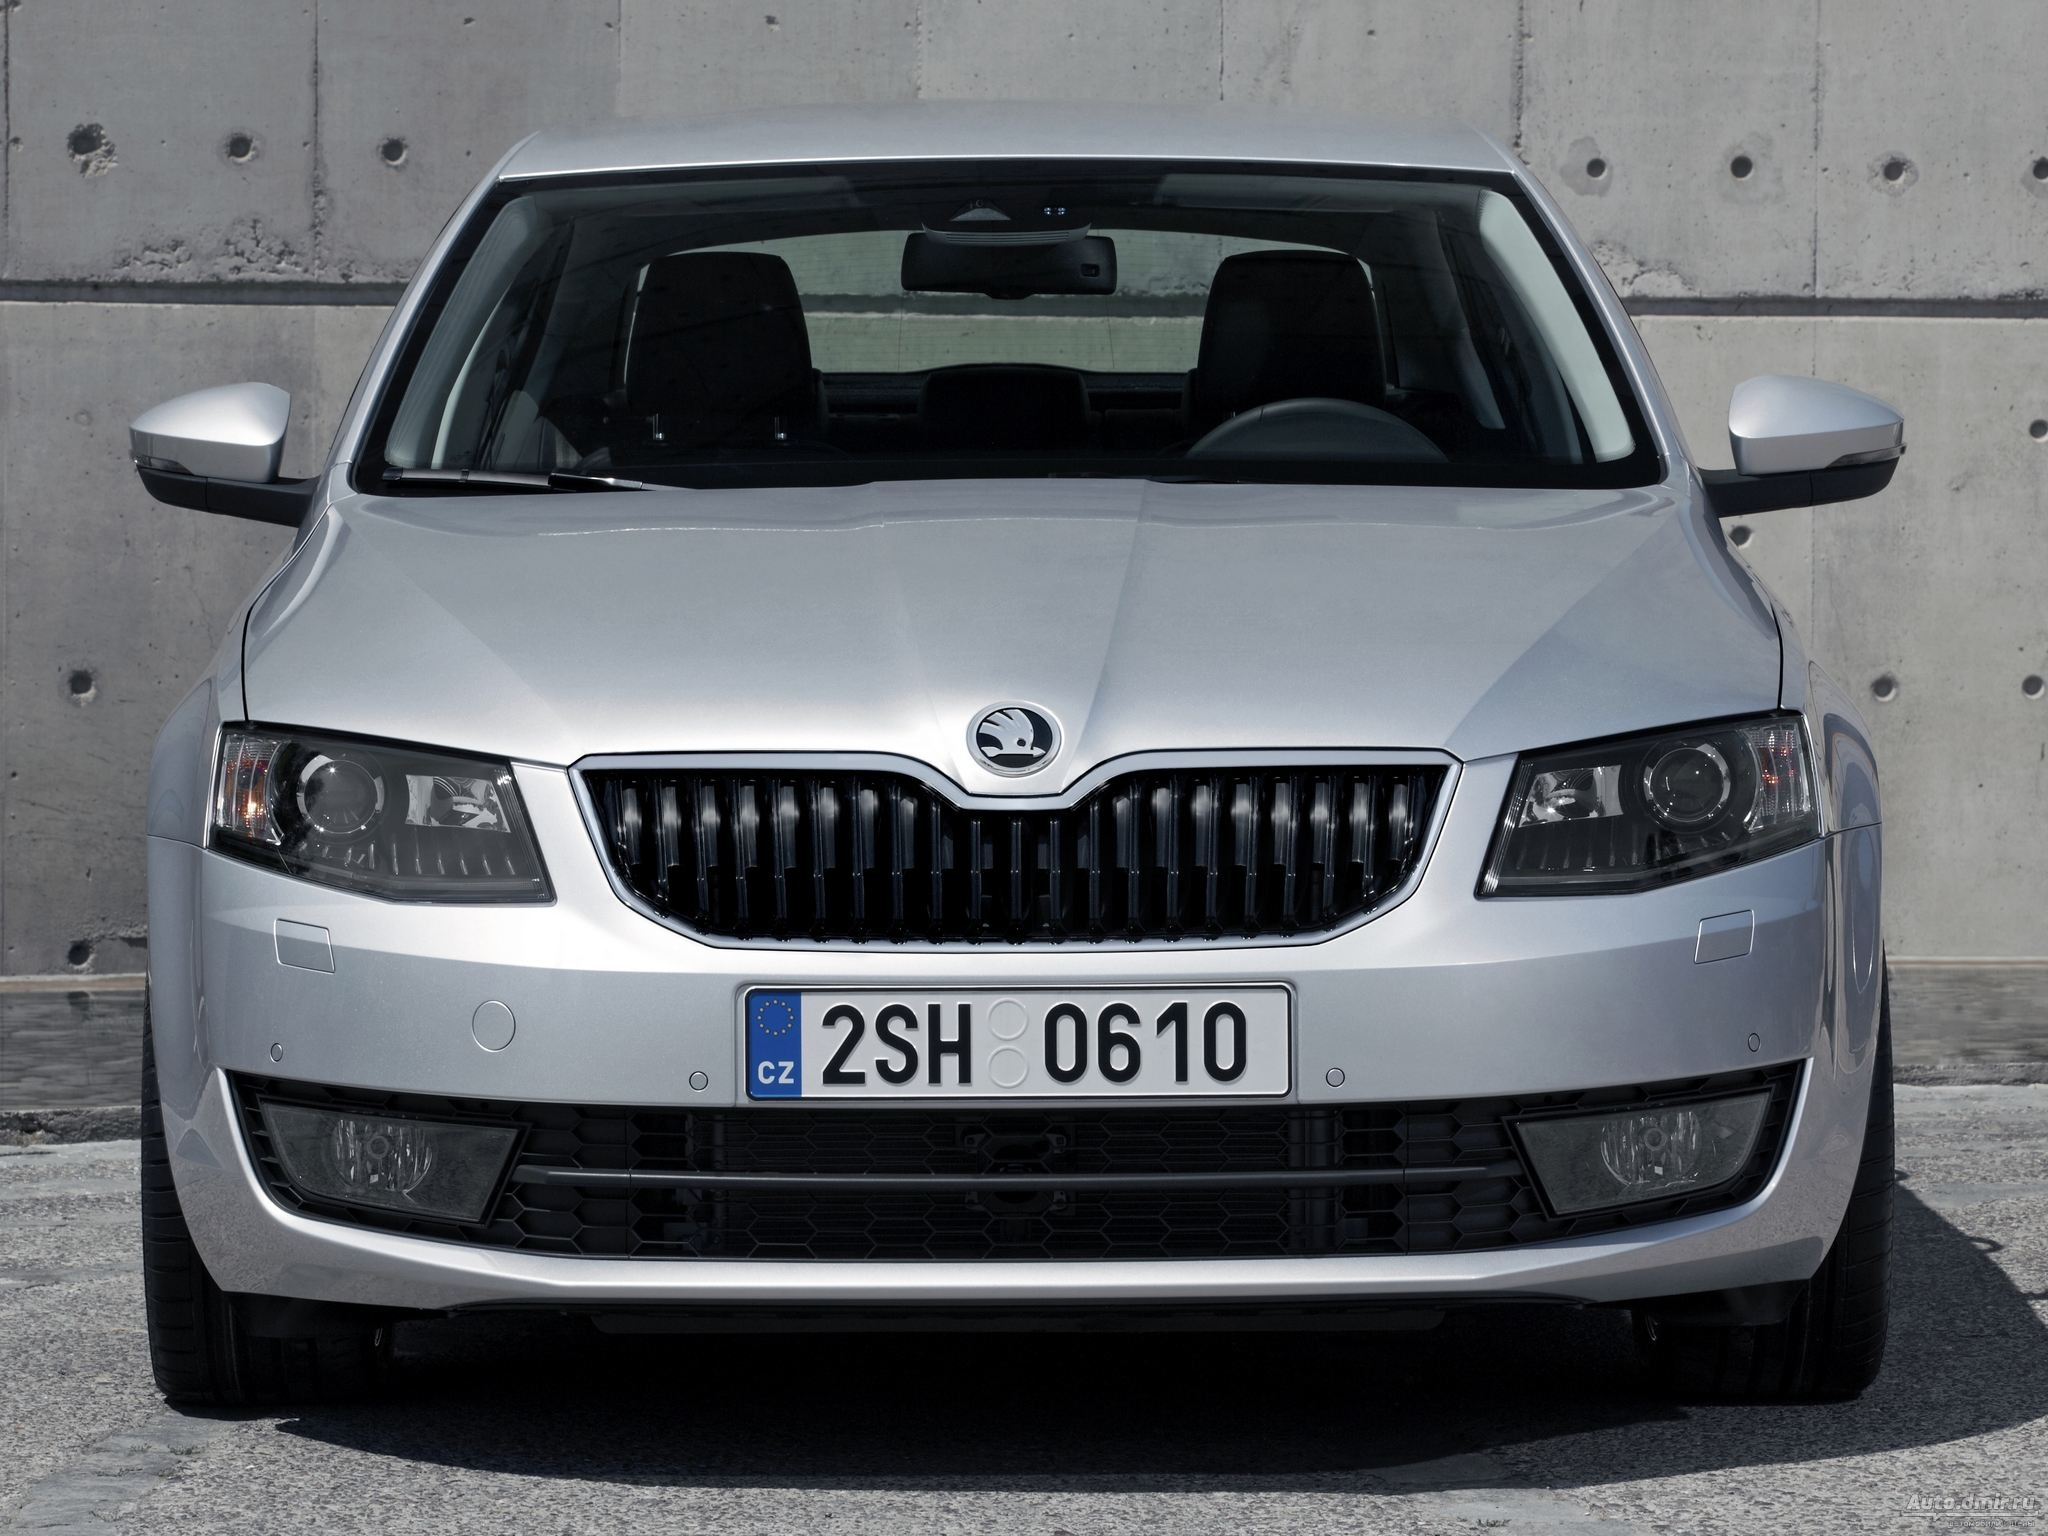 Skoda Octavia A7 HD pictures